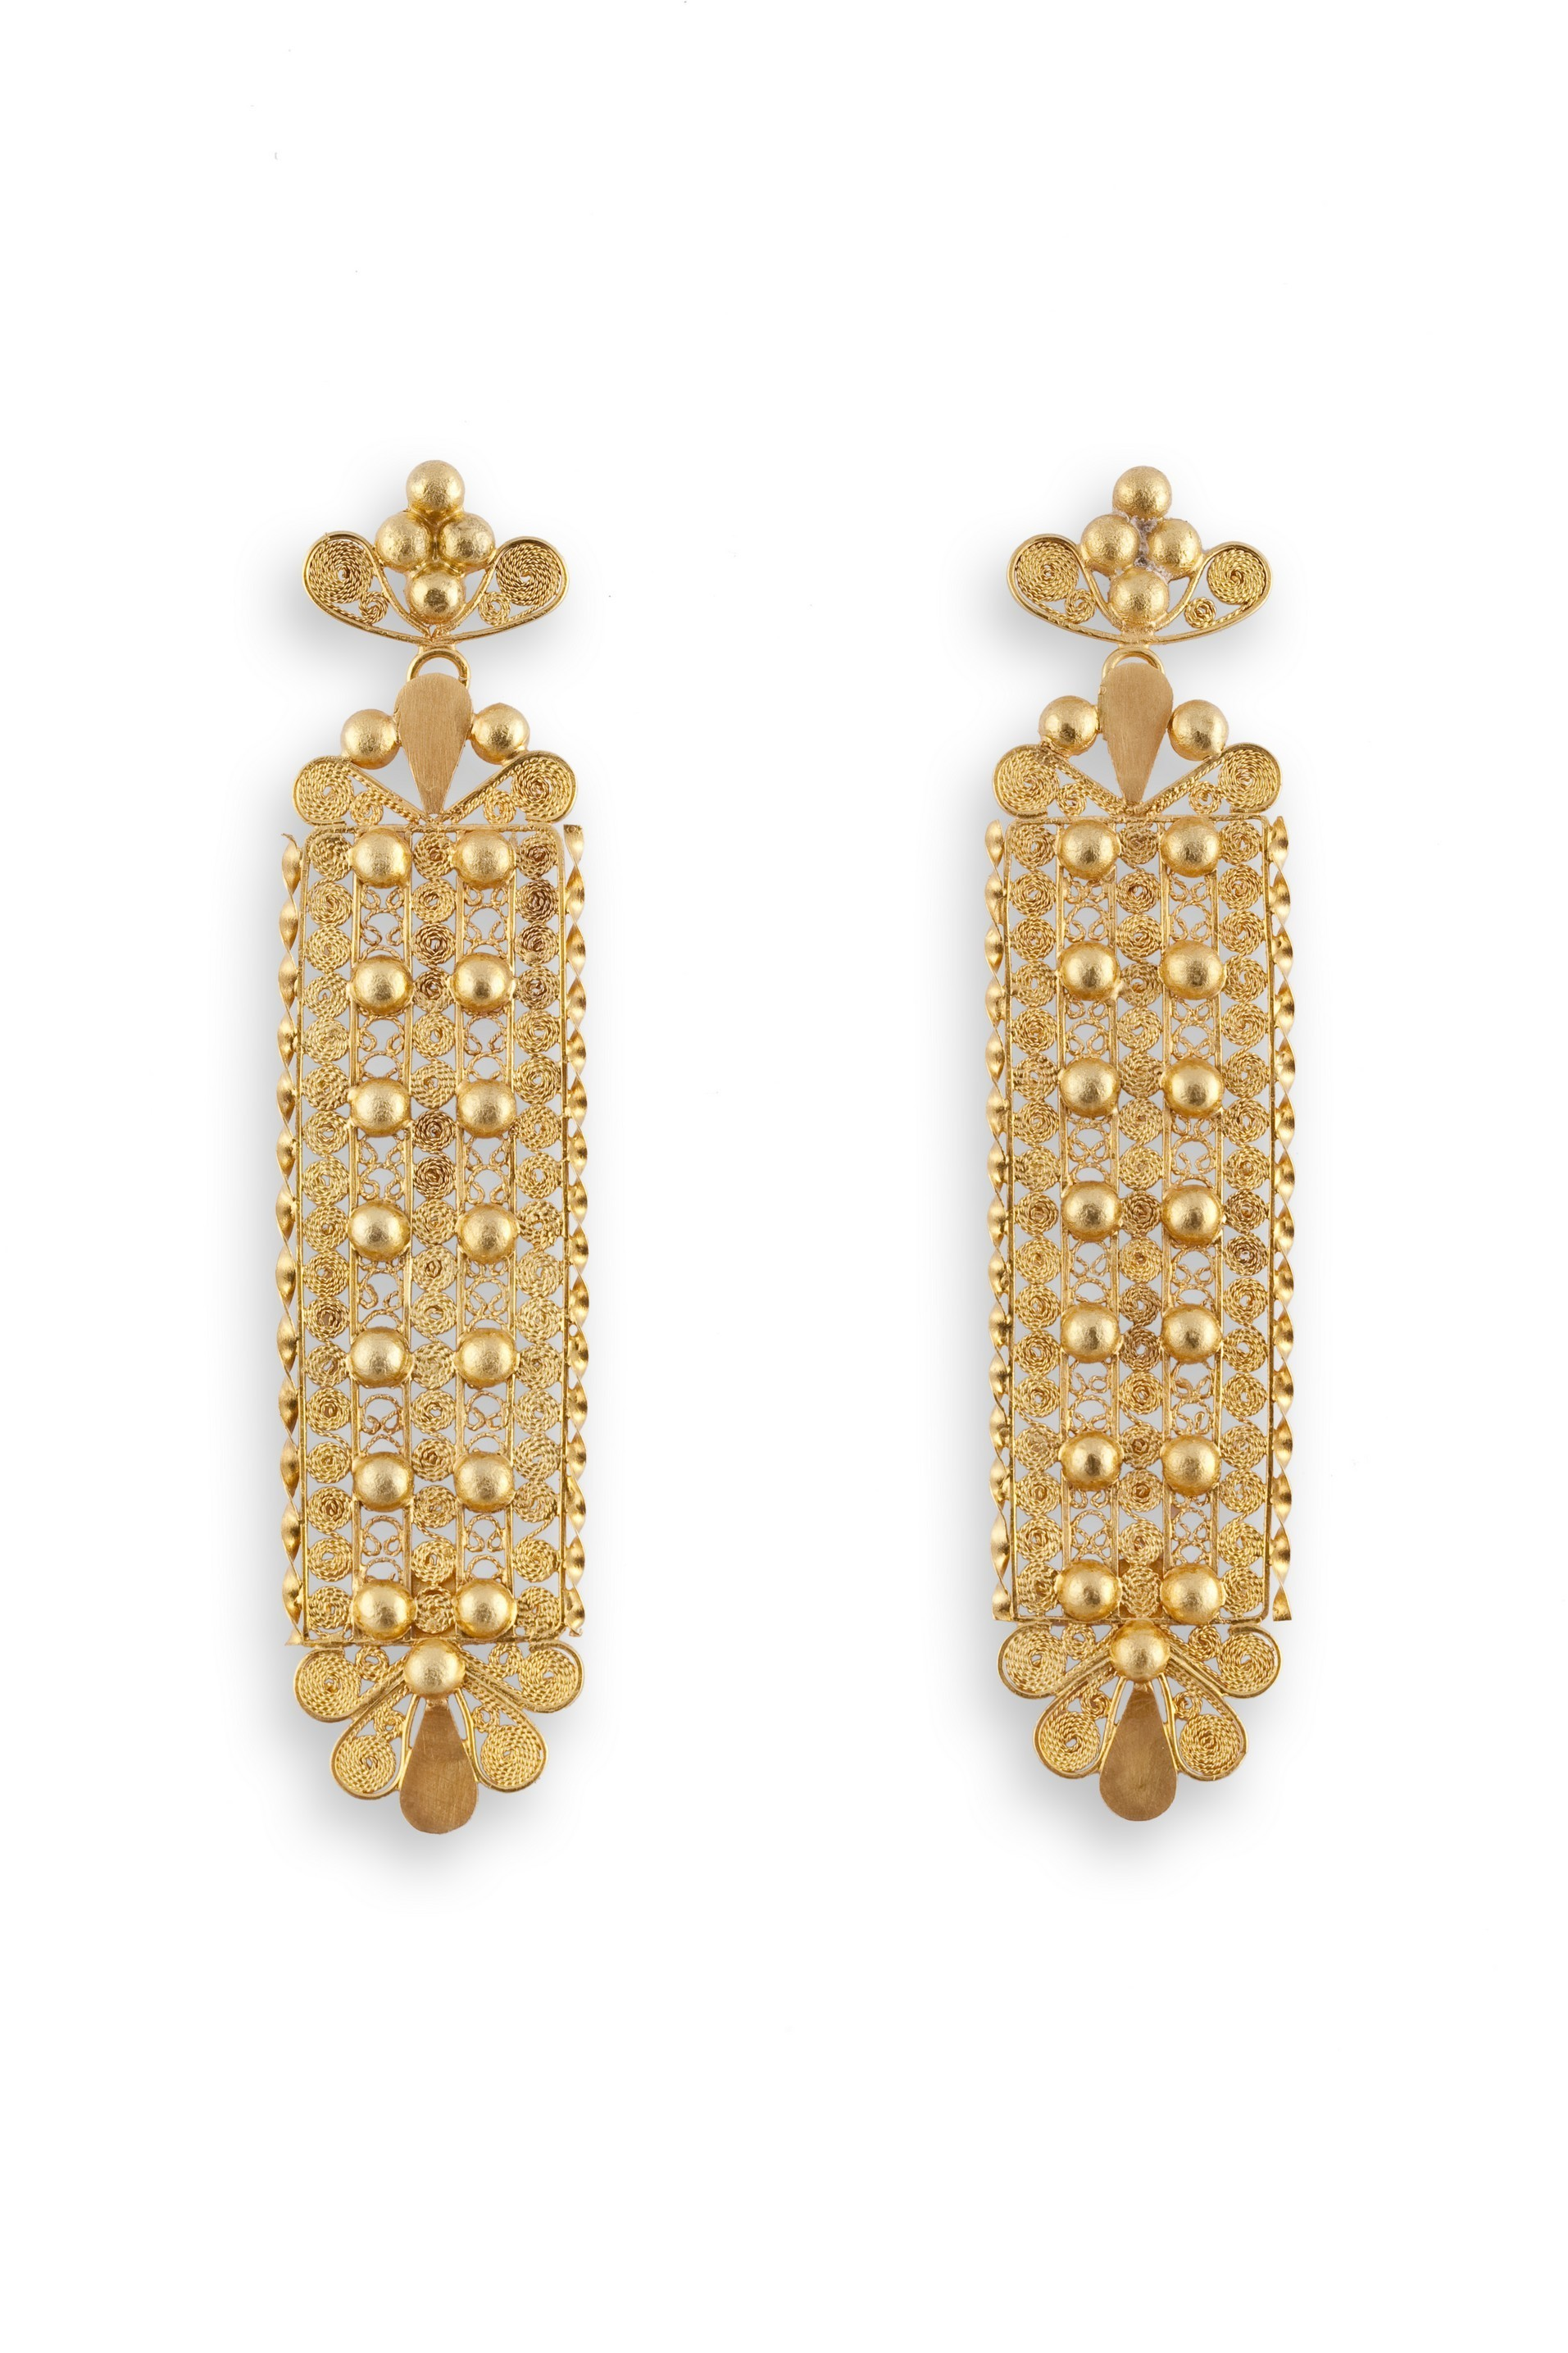 en home pizzo earrings gold regale sardinian filigree in